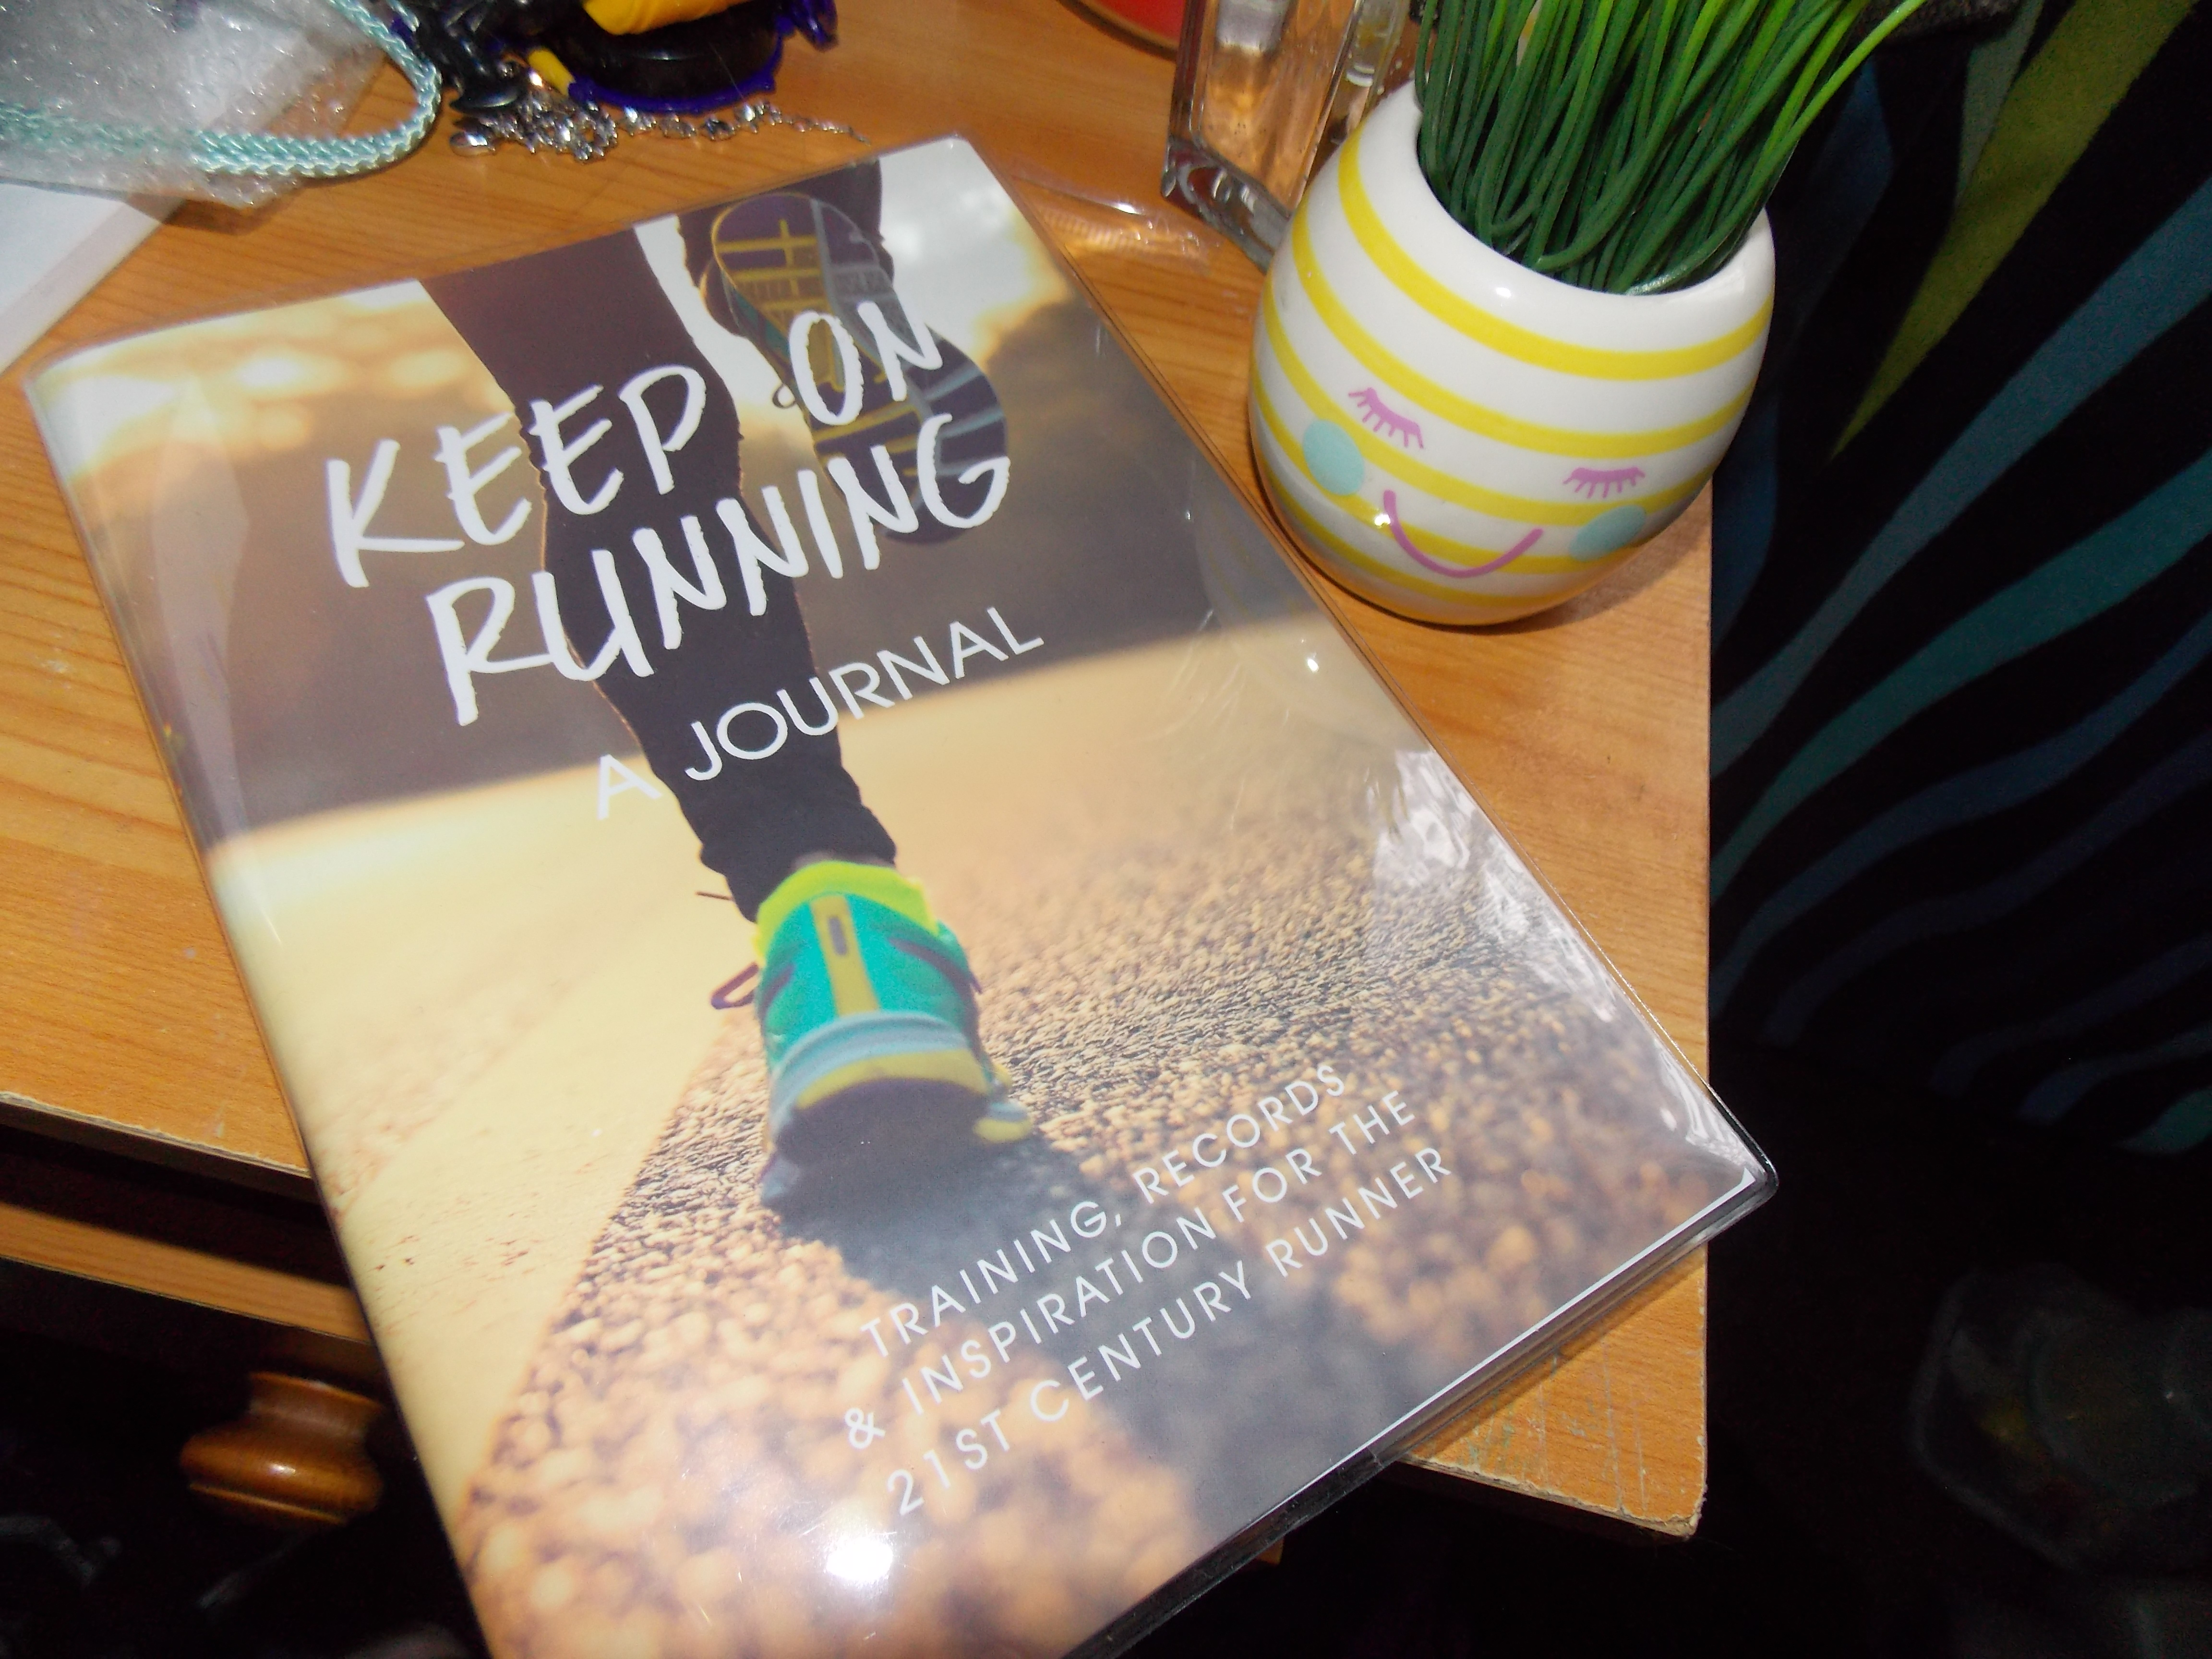 """A product picture of a running journal, with the words on front that say """"keep on running, a journal, training records & inspiration for the 21st century runner"""" and a picture of running legs/shoes. Taken on a wooden table with a stripey yellow and white plant pot with a pink smiley face."""